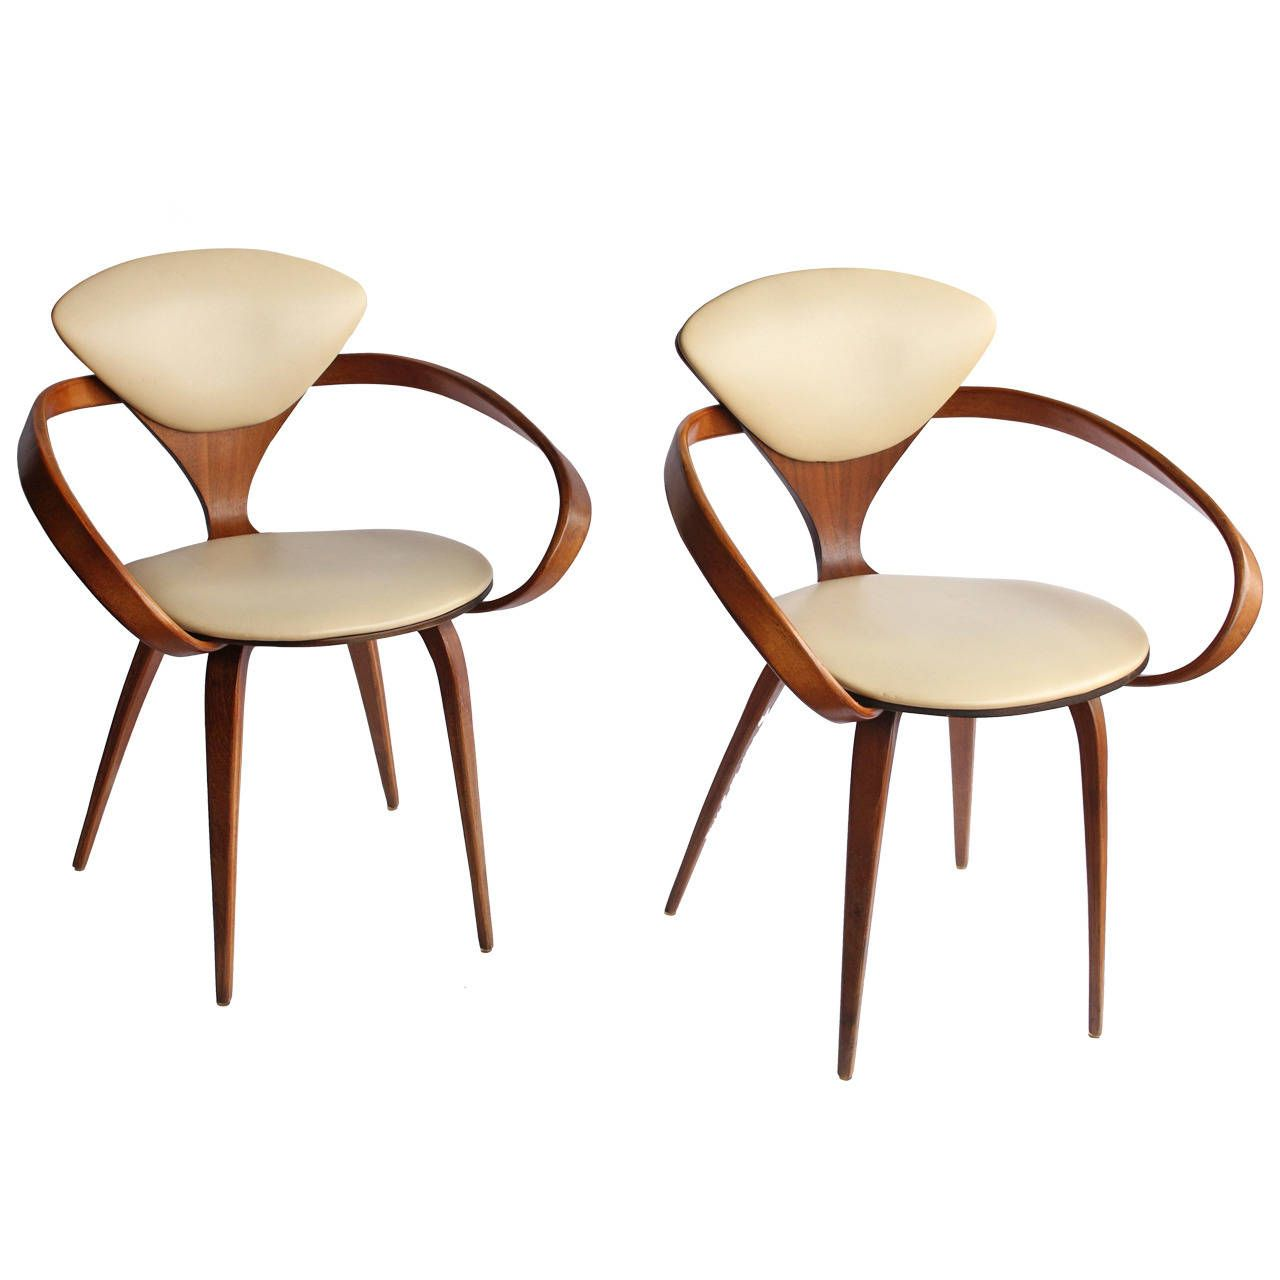 1950s pretzel chairs by norman cherner | norman, pretzels and 1950s